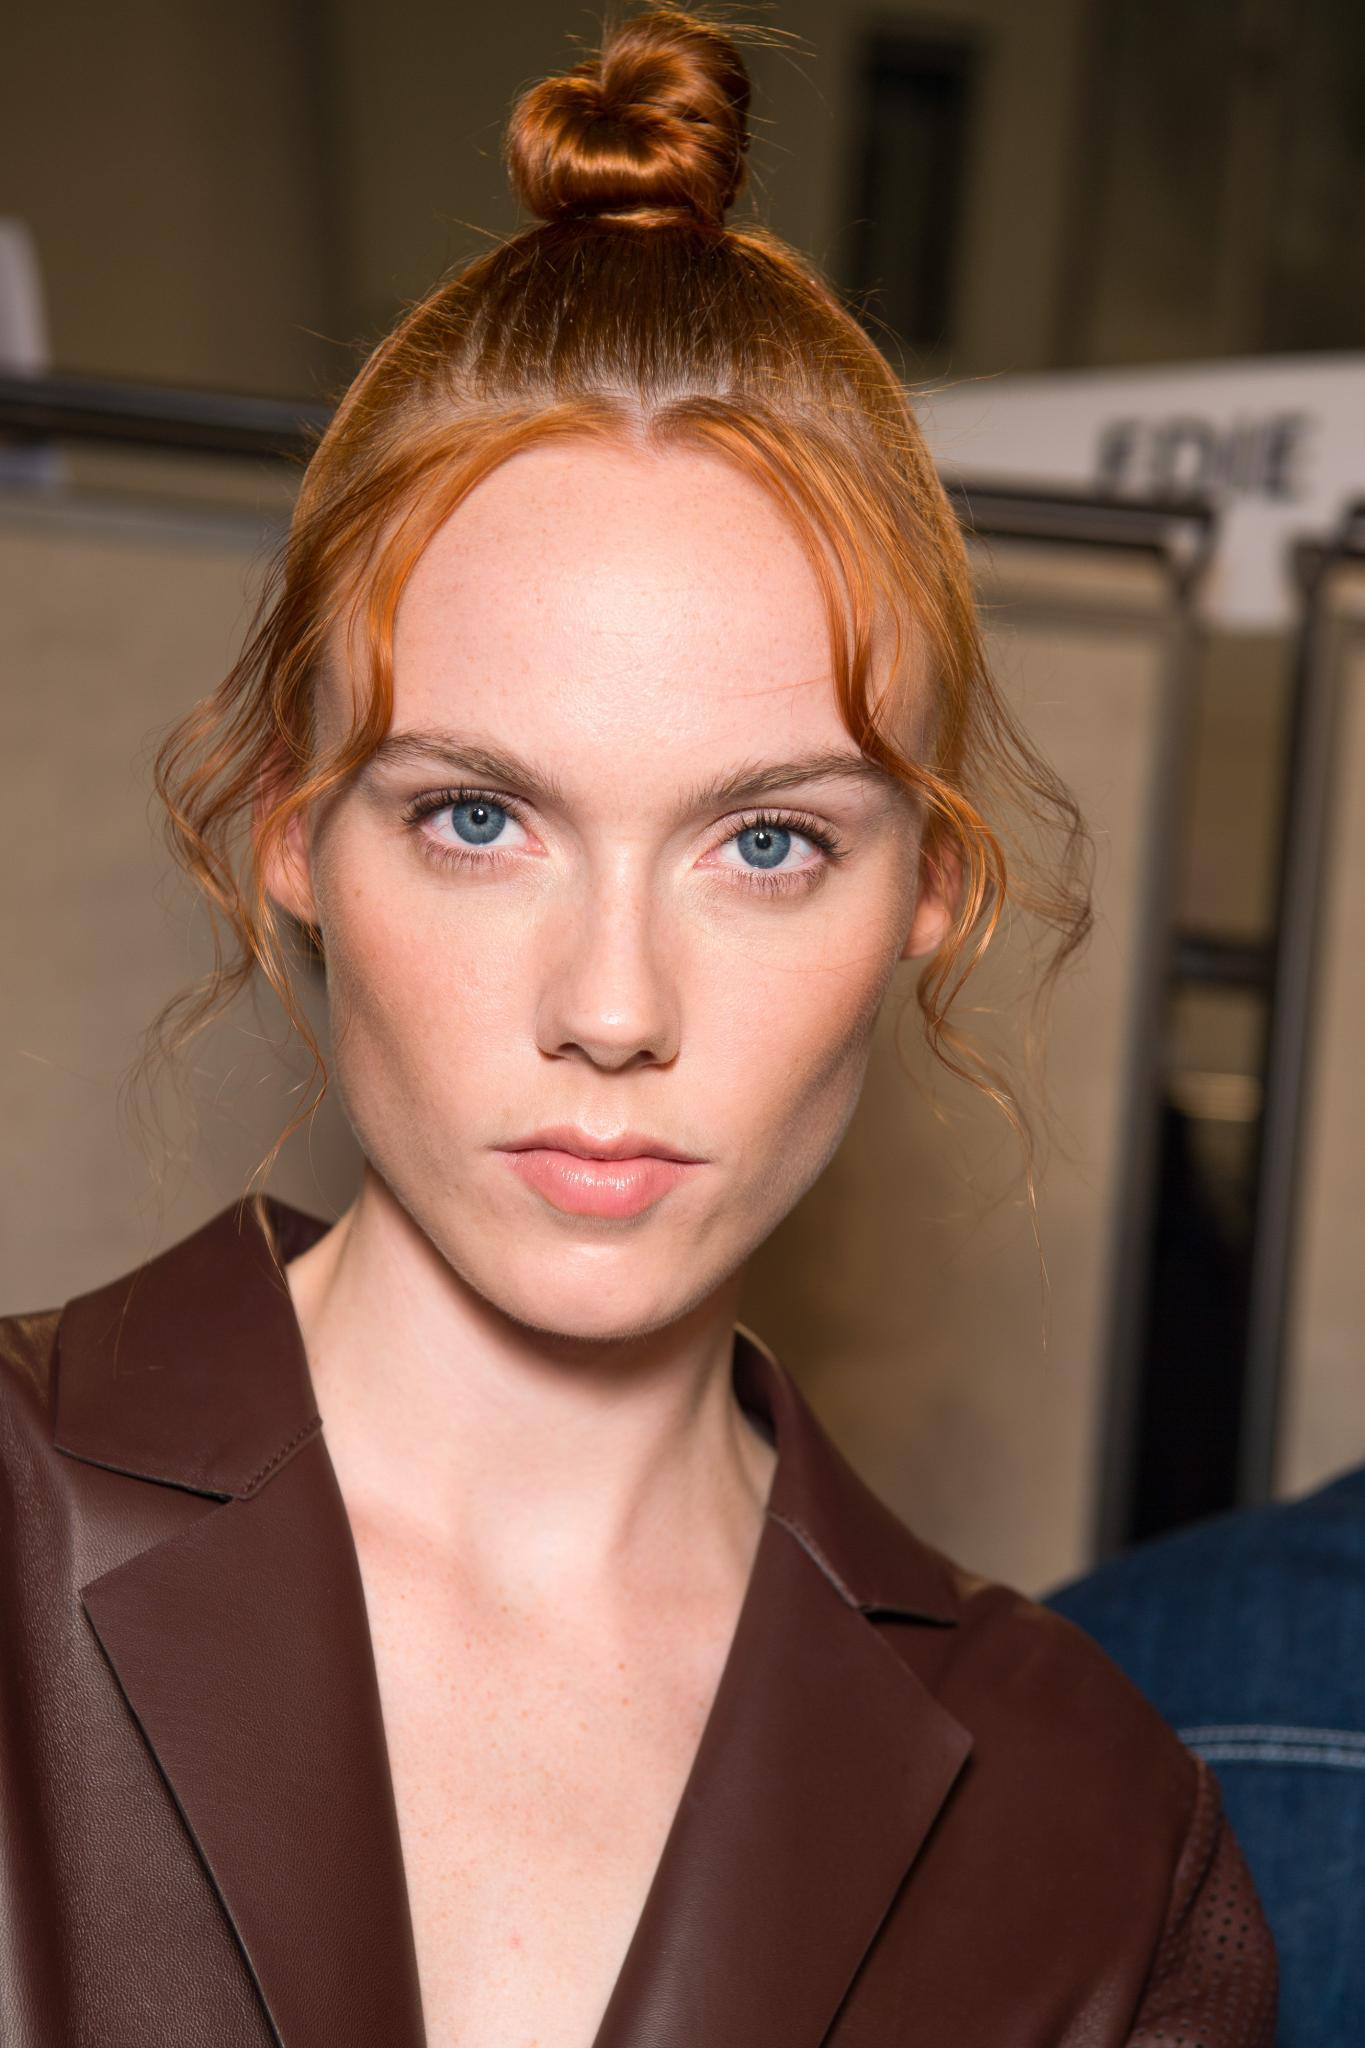 Co-washing hair guide: Shot of a model with ginger hair styled into a messy topknot